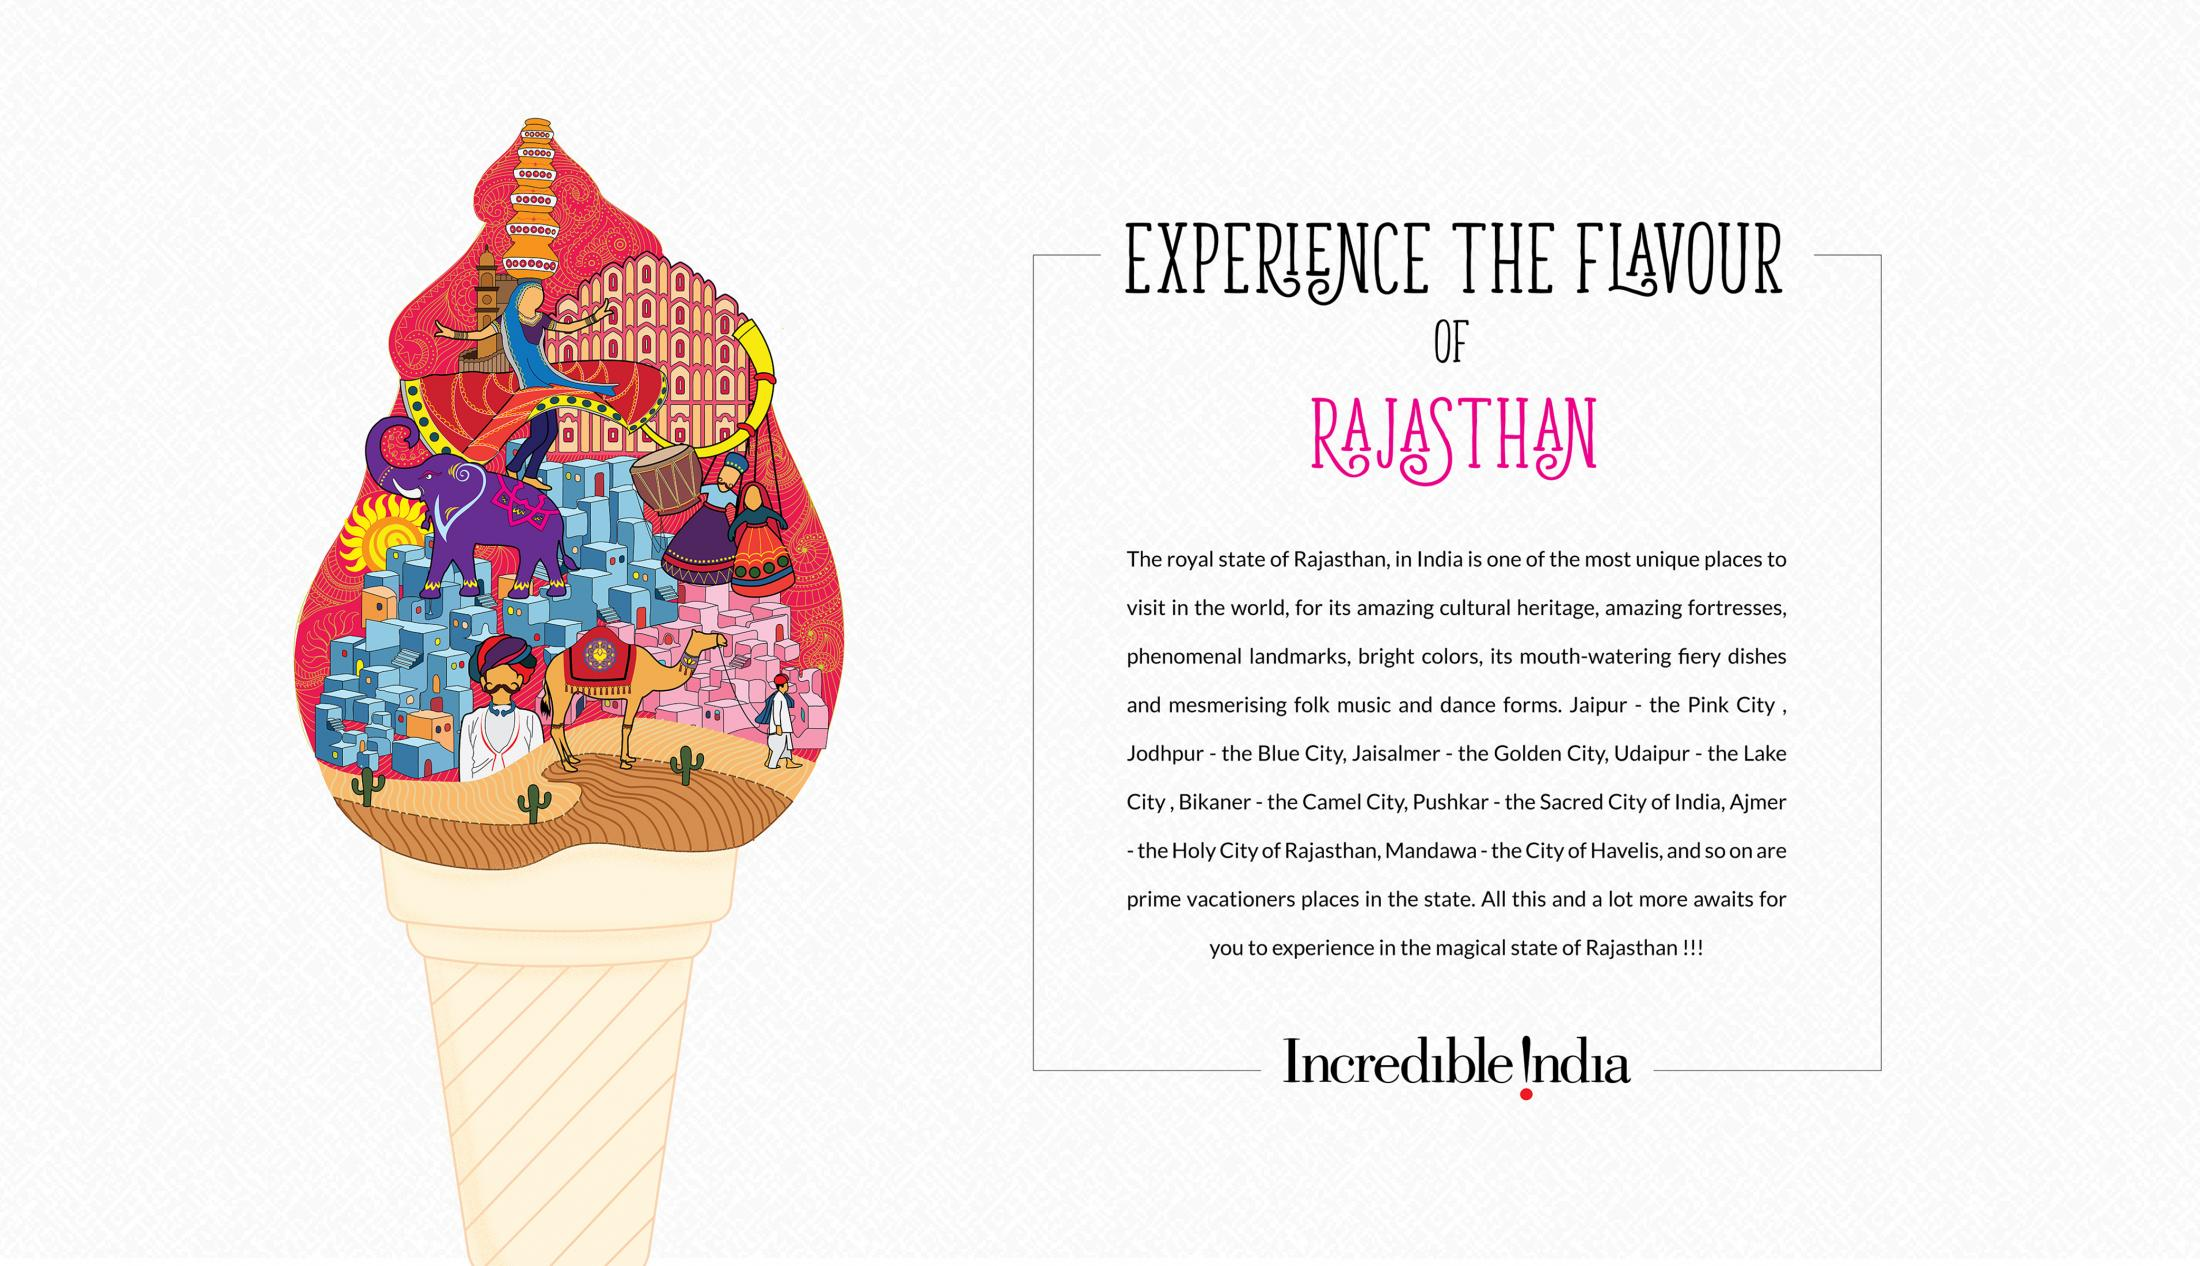 Incredible India Print Ad - Flavours of India - Rajasthan